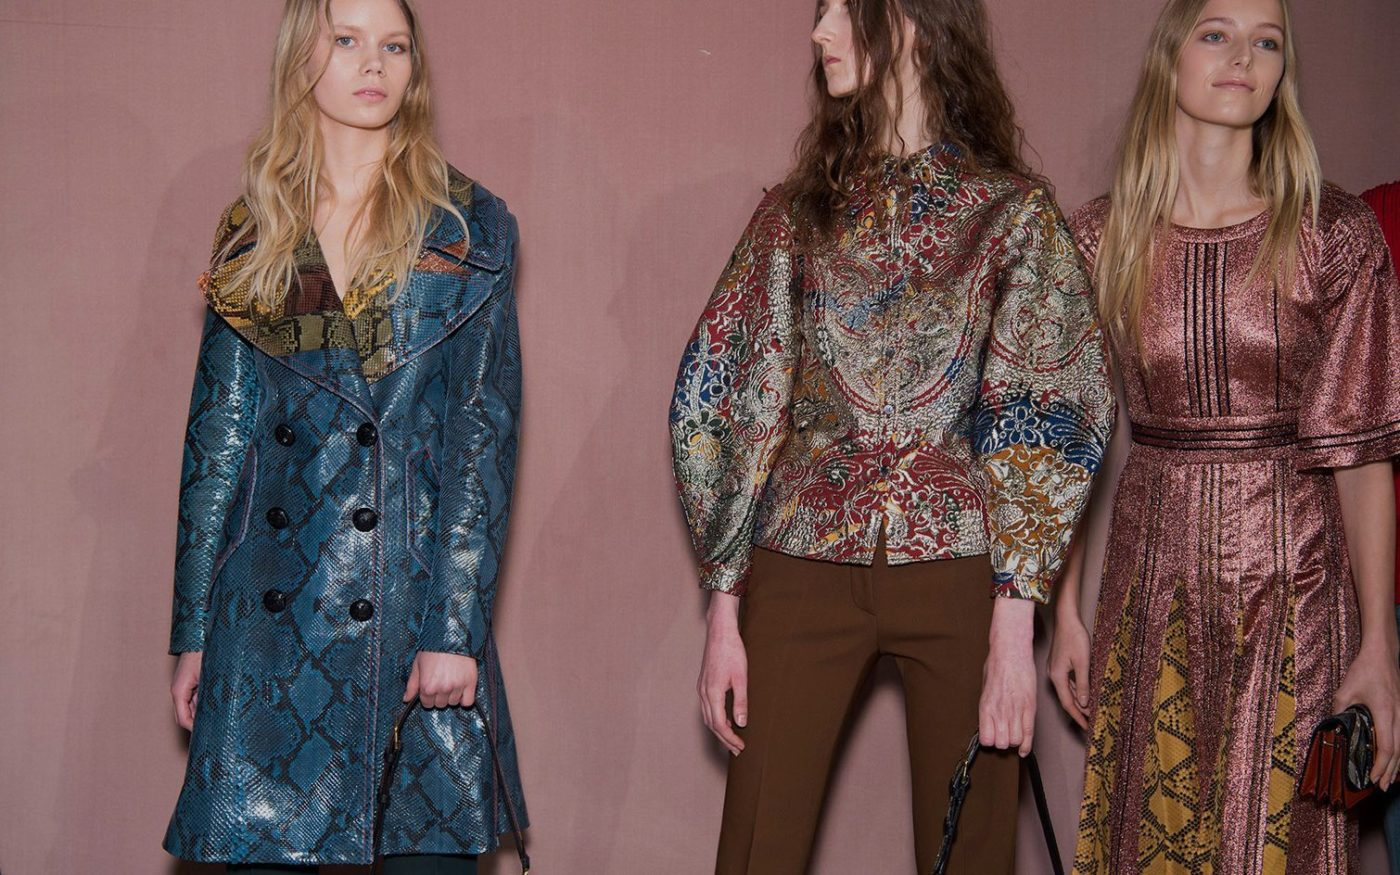 BURBERRY FALL 2016 RTW COLLECTION